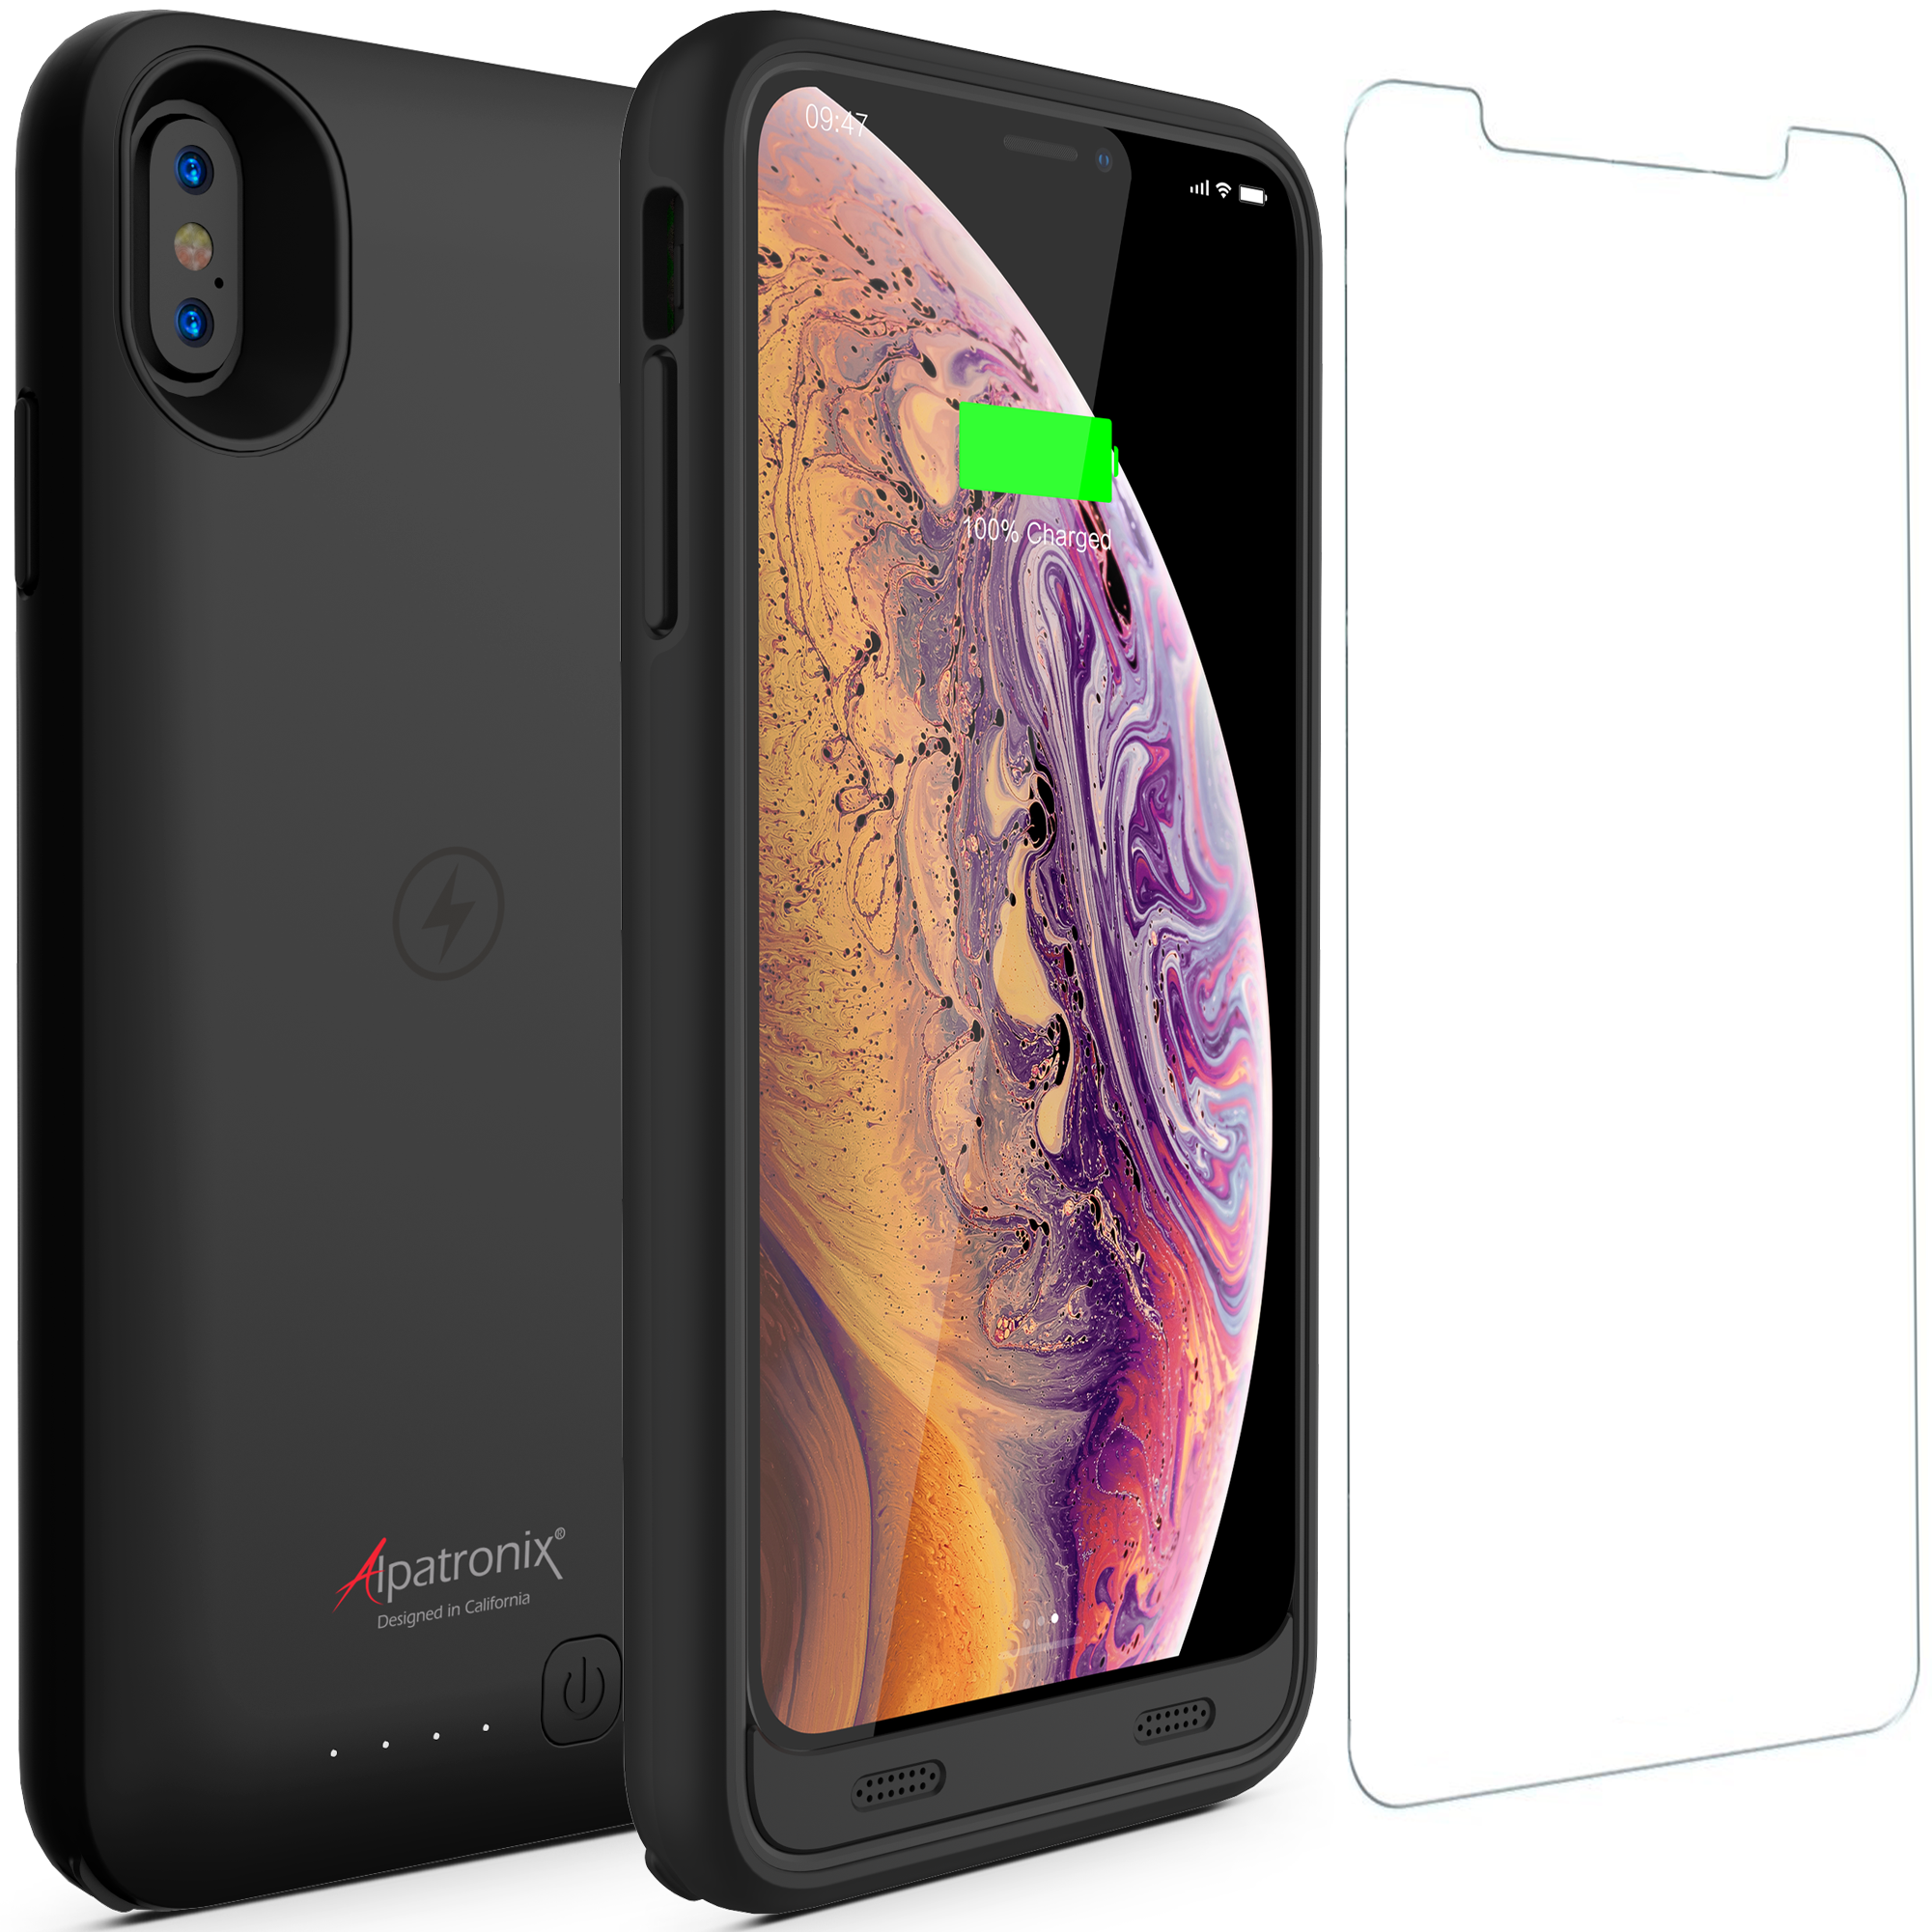 iPhone Xs Max Battery Case with Qi Wireless Charging Compatible, Alpatronix BX10 Max 6.5-inch 3500mAh Rechargeable Protective Portable Charger Cover for iPhone Xs Max Juice Bank Power Pack